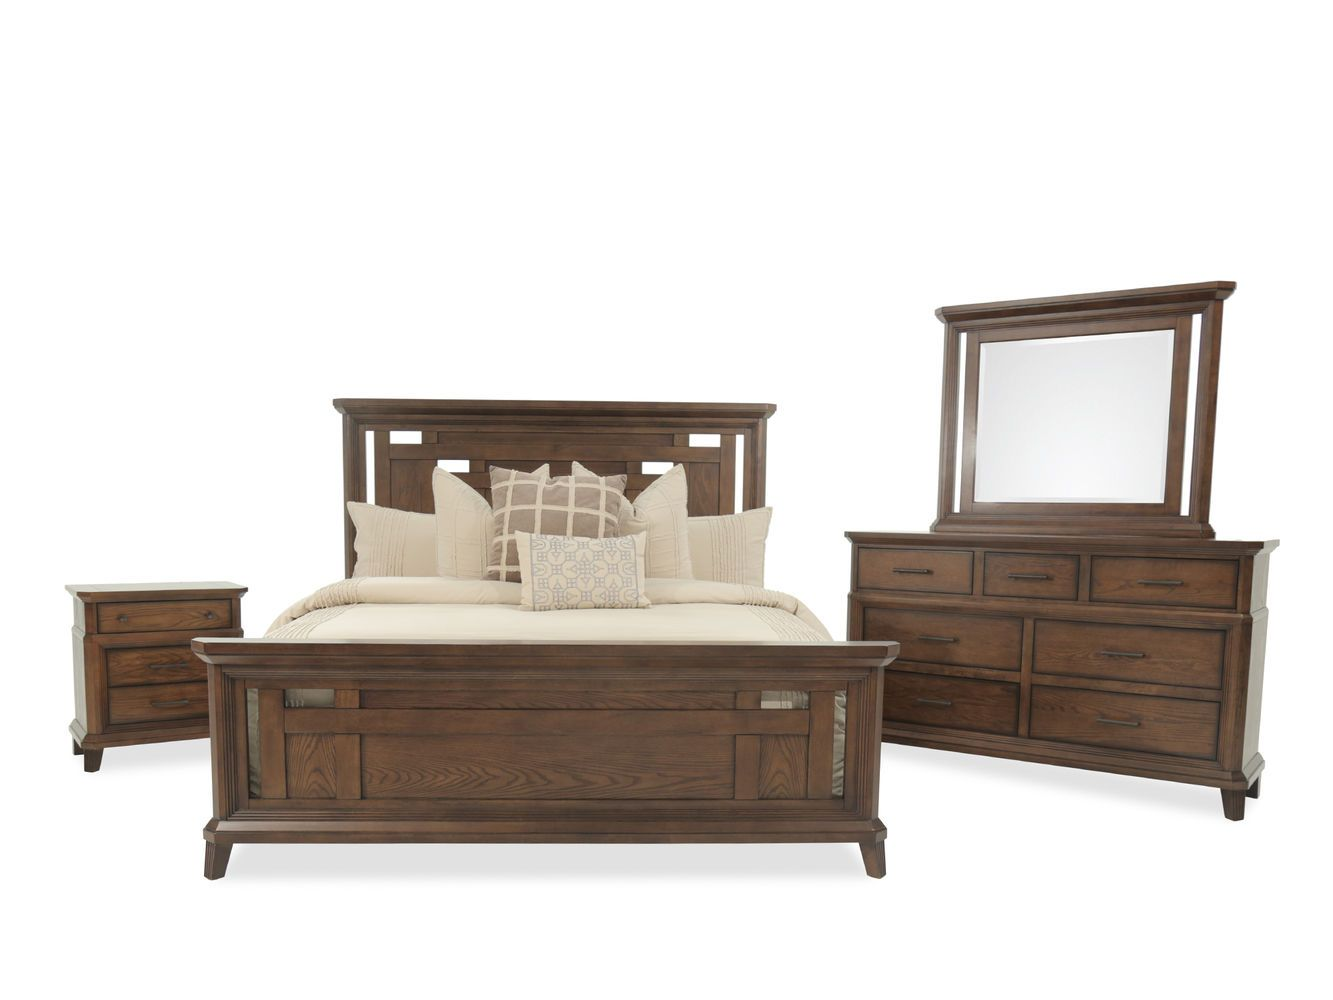 Broyhill Estes Park Suite Mathis Brothers Furniture With Images